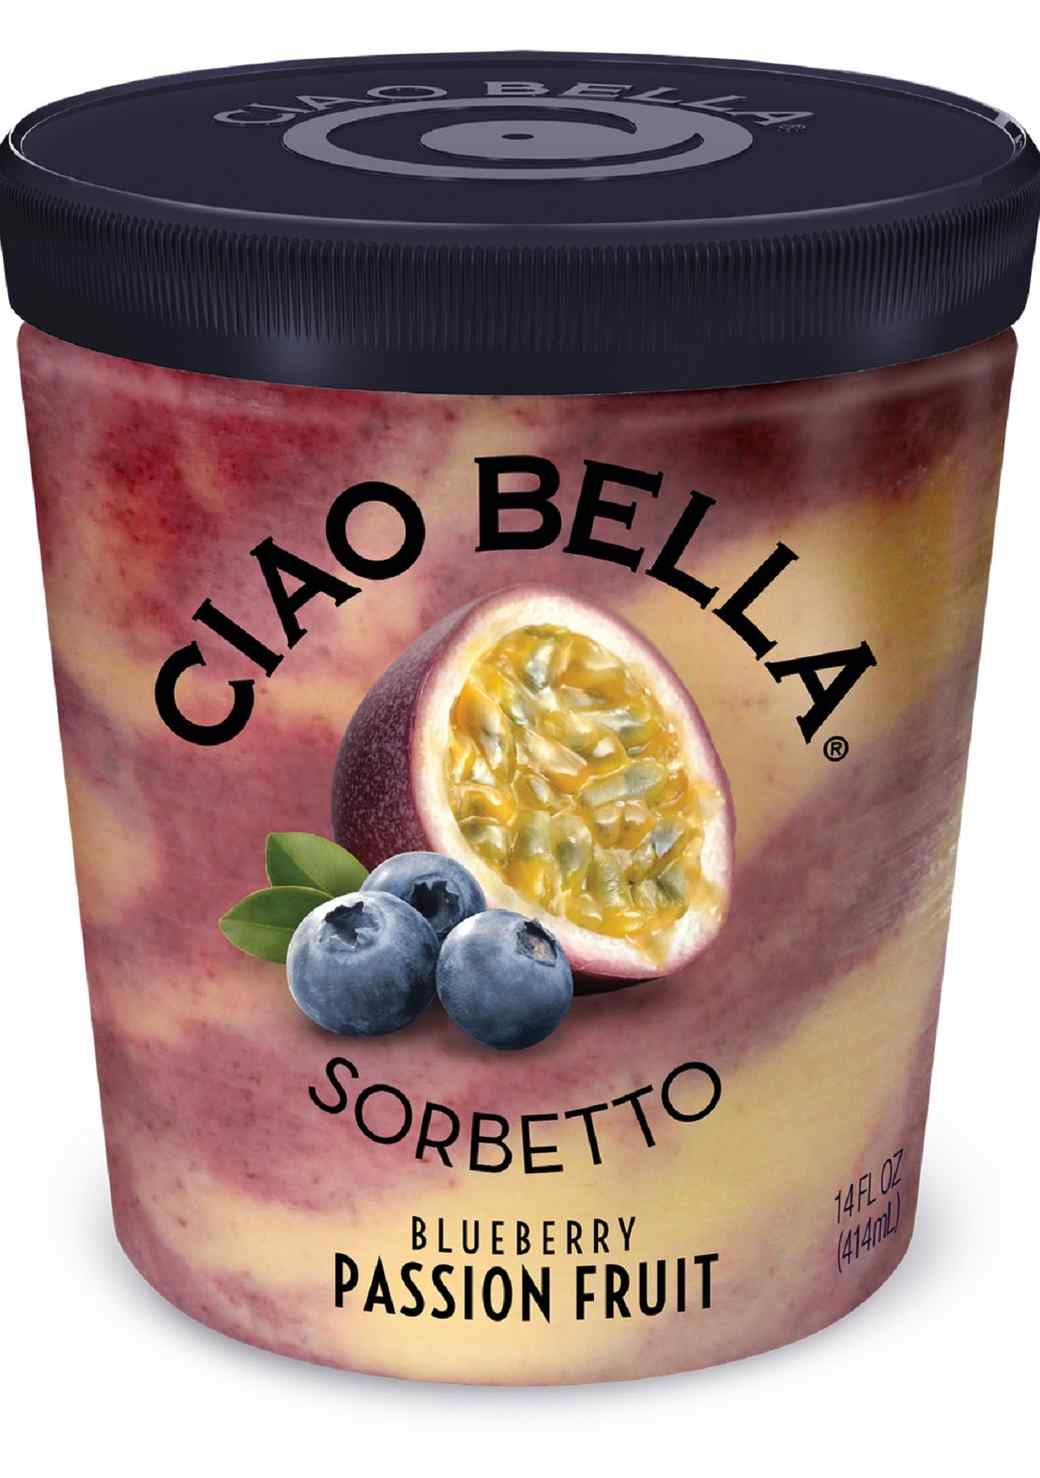 Blueberry-Passion-Fruit-Sorbetto--Martha-Stewart--Foods-You-Should-NOT-Give-Up.jpg (skyword:218609)